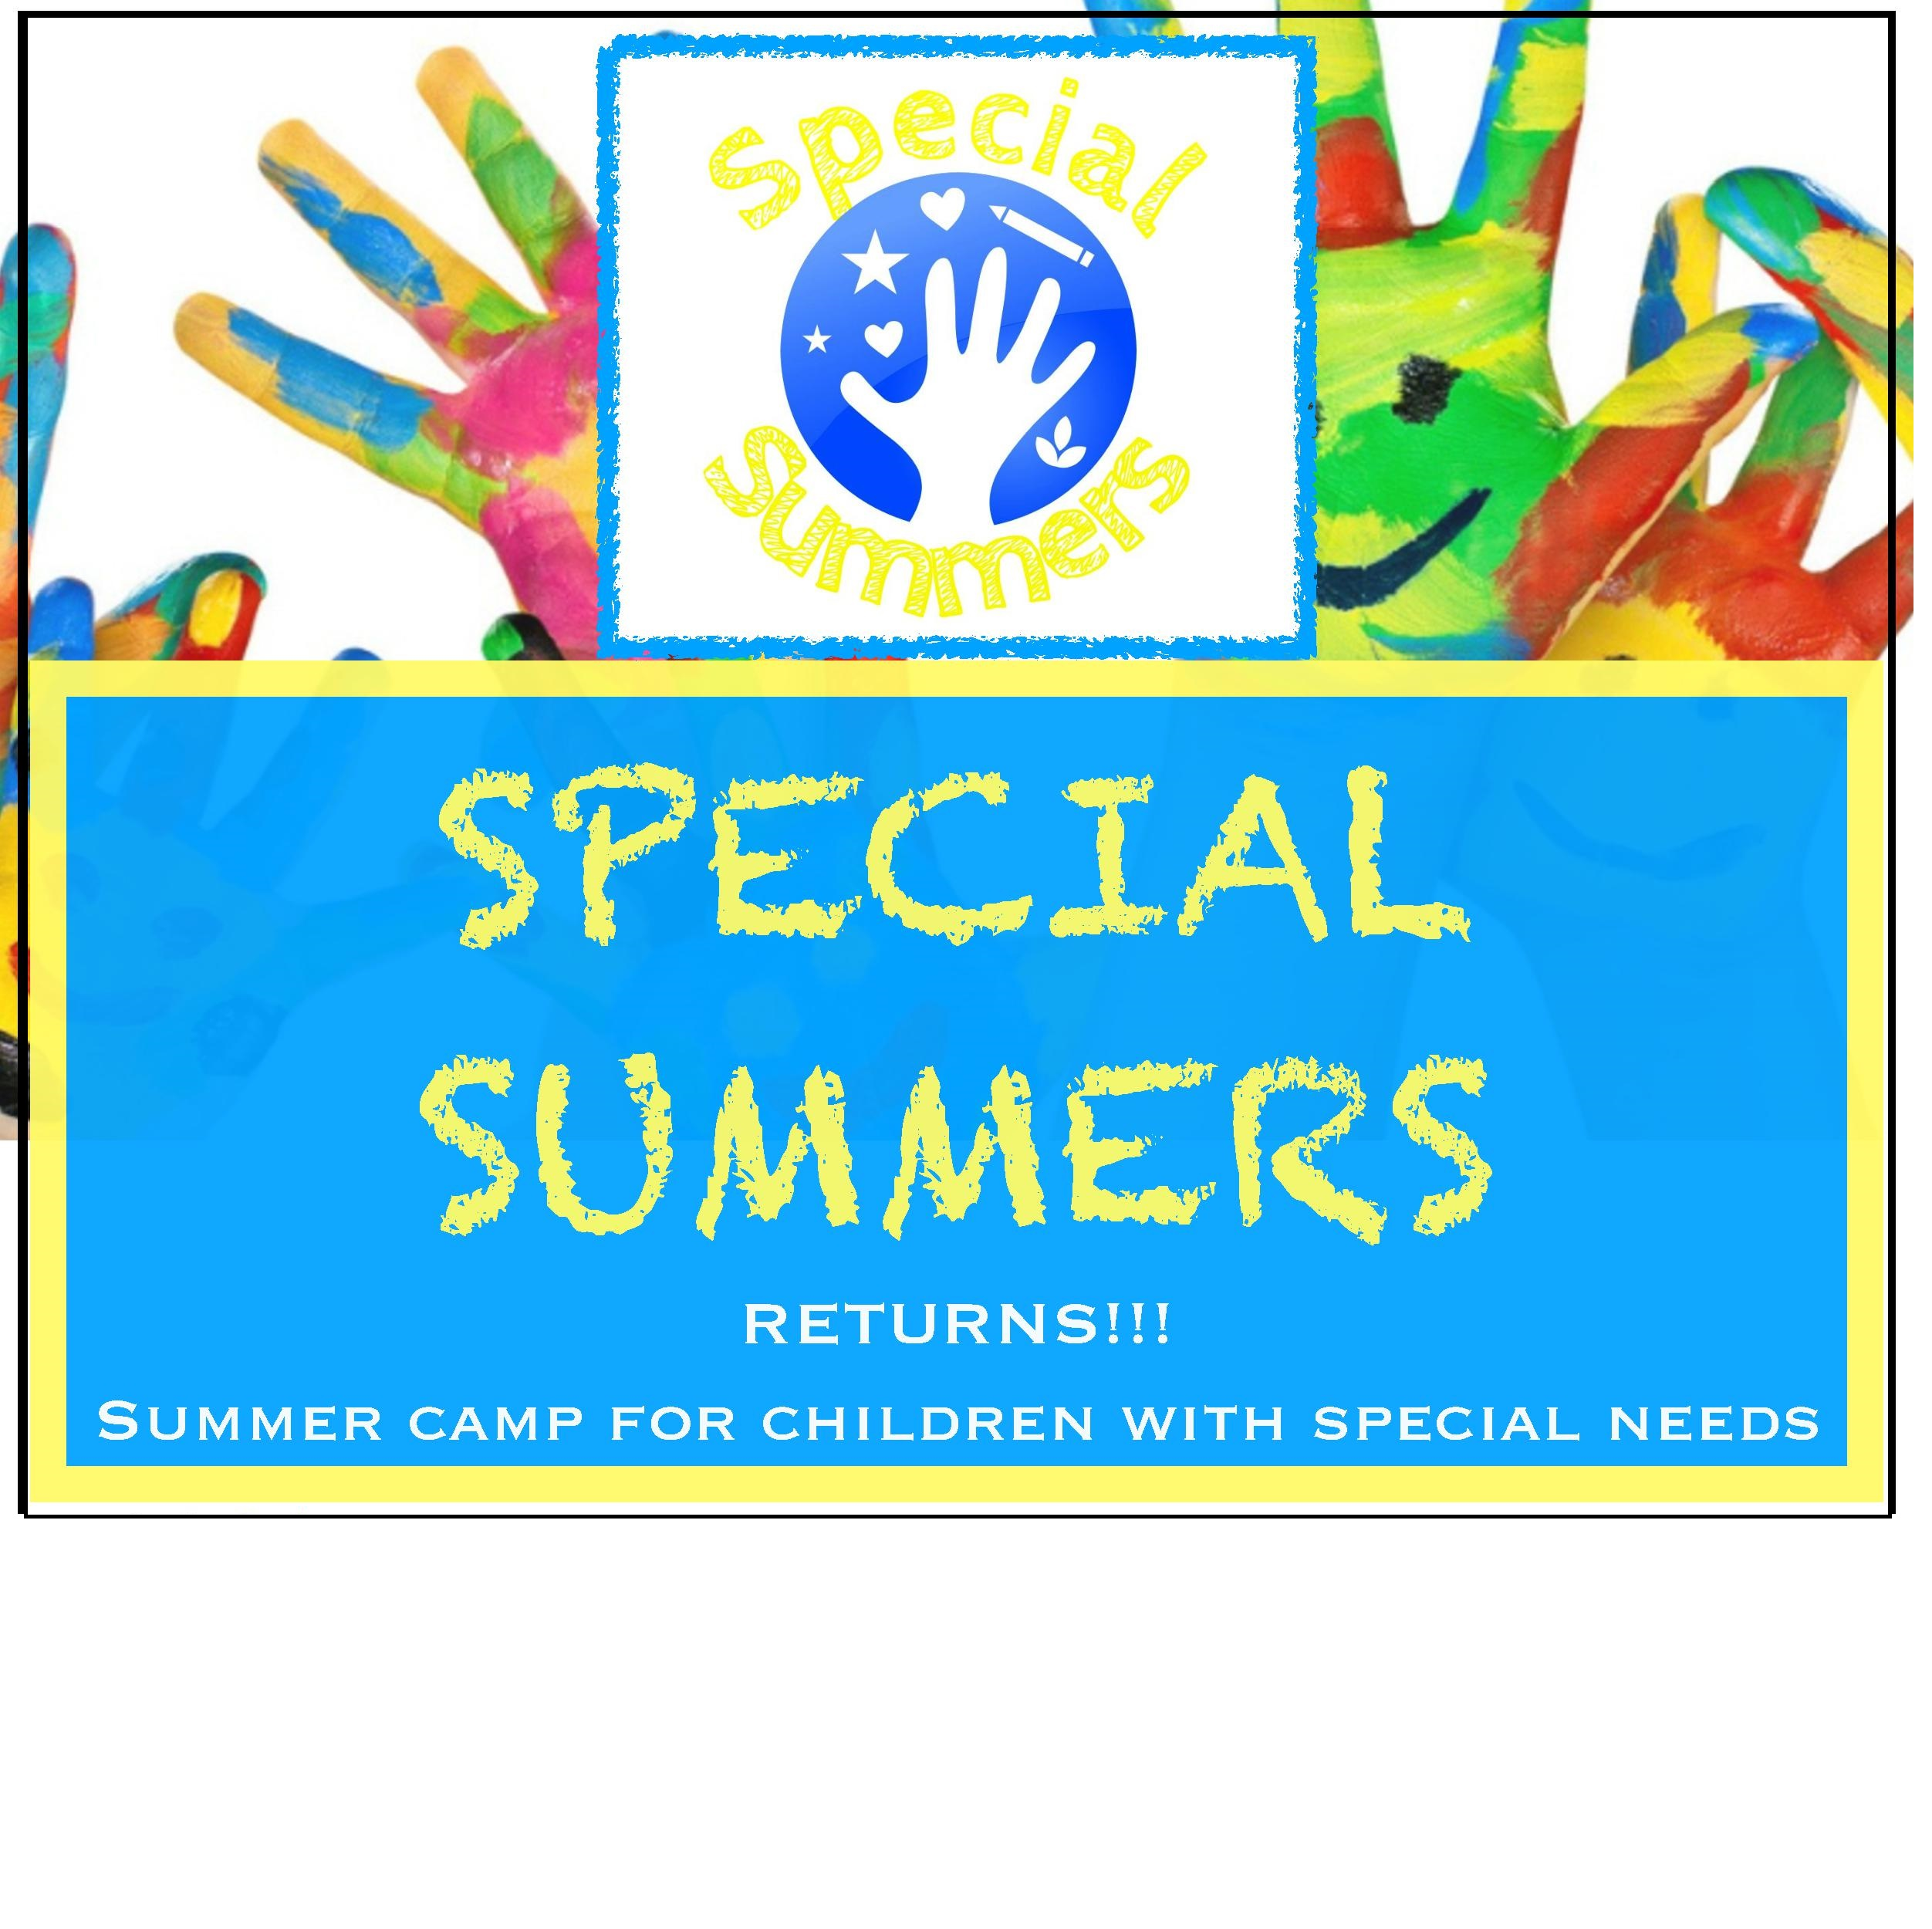 Summer Camp For Children With Special Needs